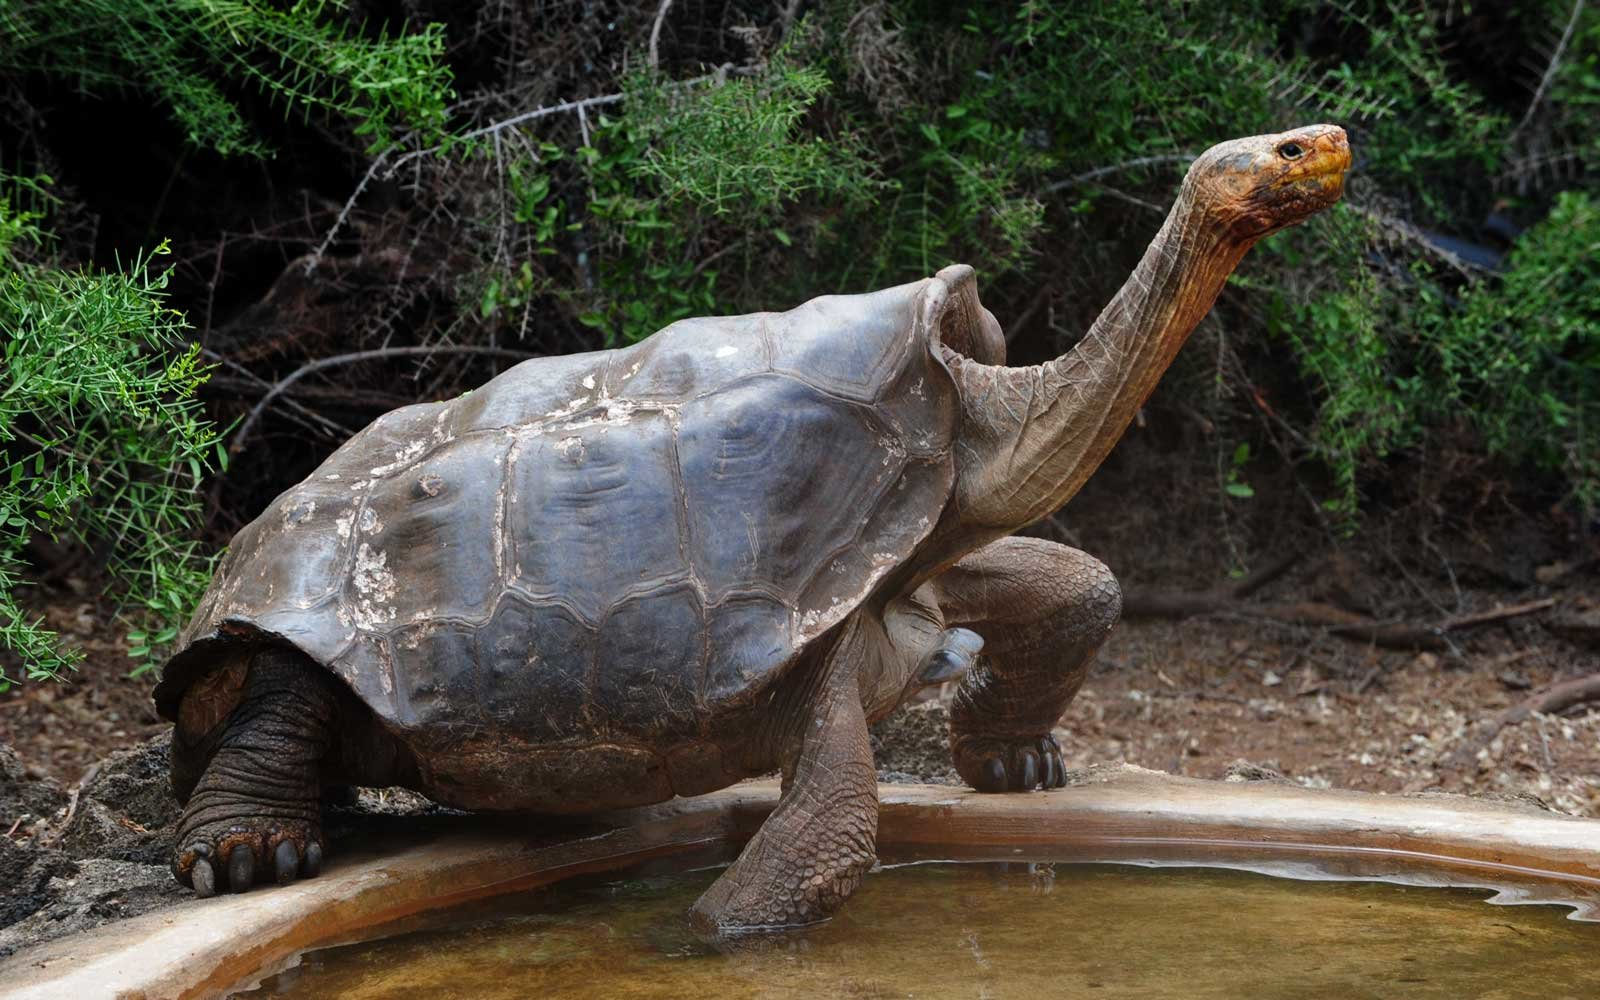 Diego, a 130-year-old tortoise, is retiring after single-handedly repopulating his species